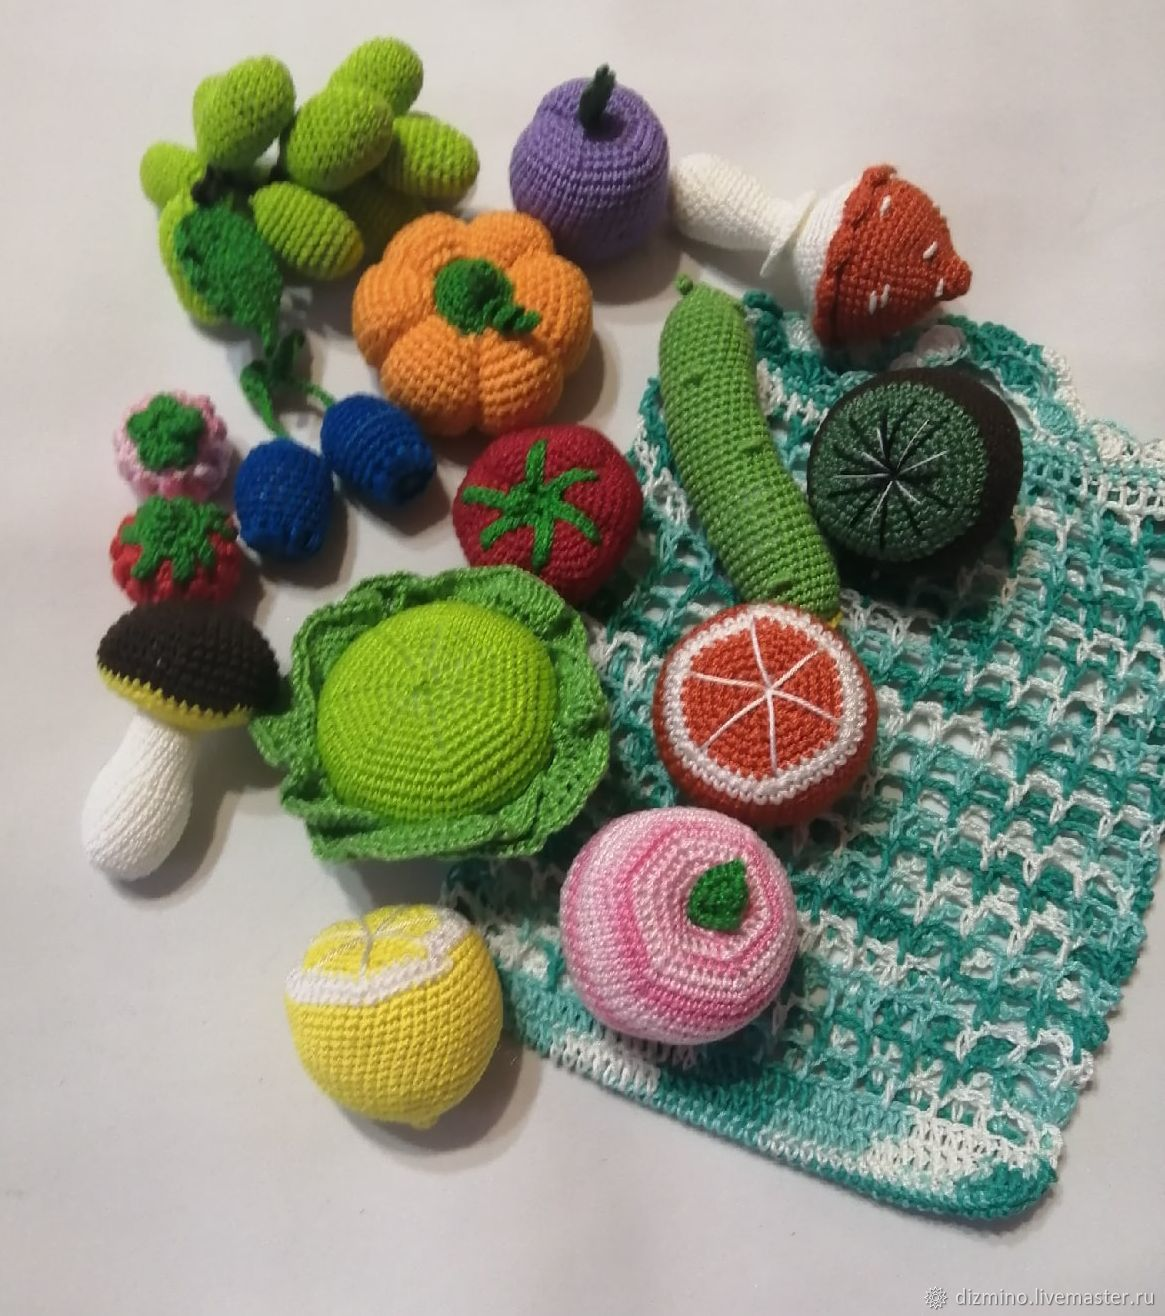 knitted fruits and vegetables in a grid, Doll food, Yar,  Фото №1